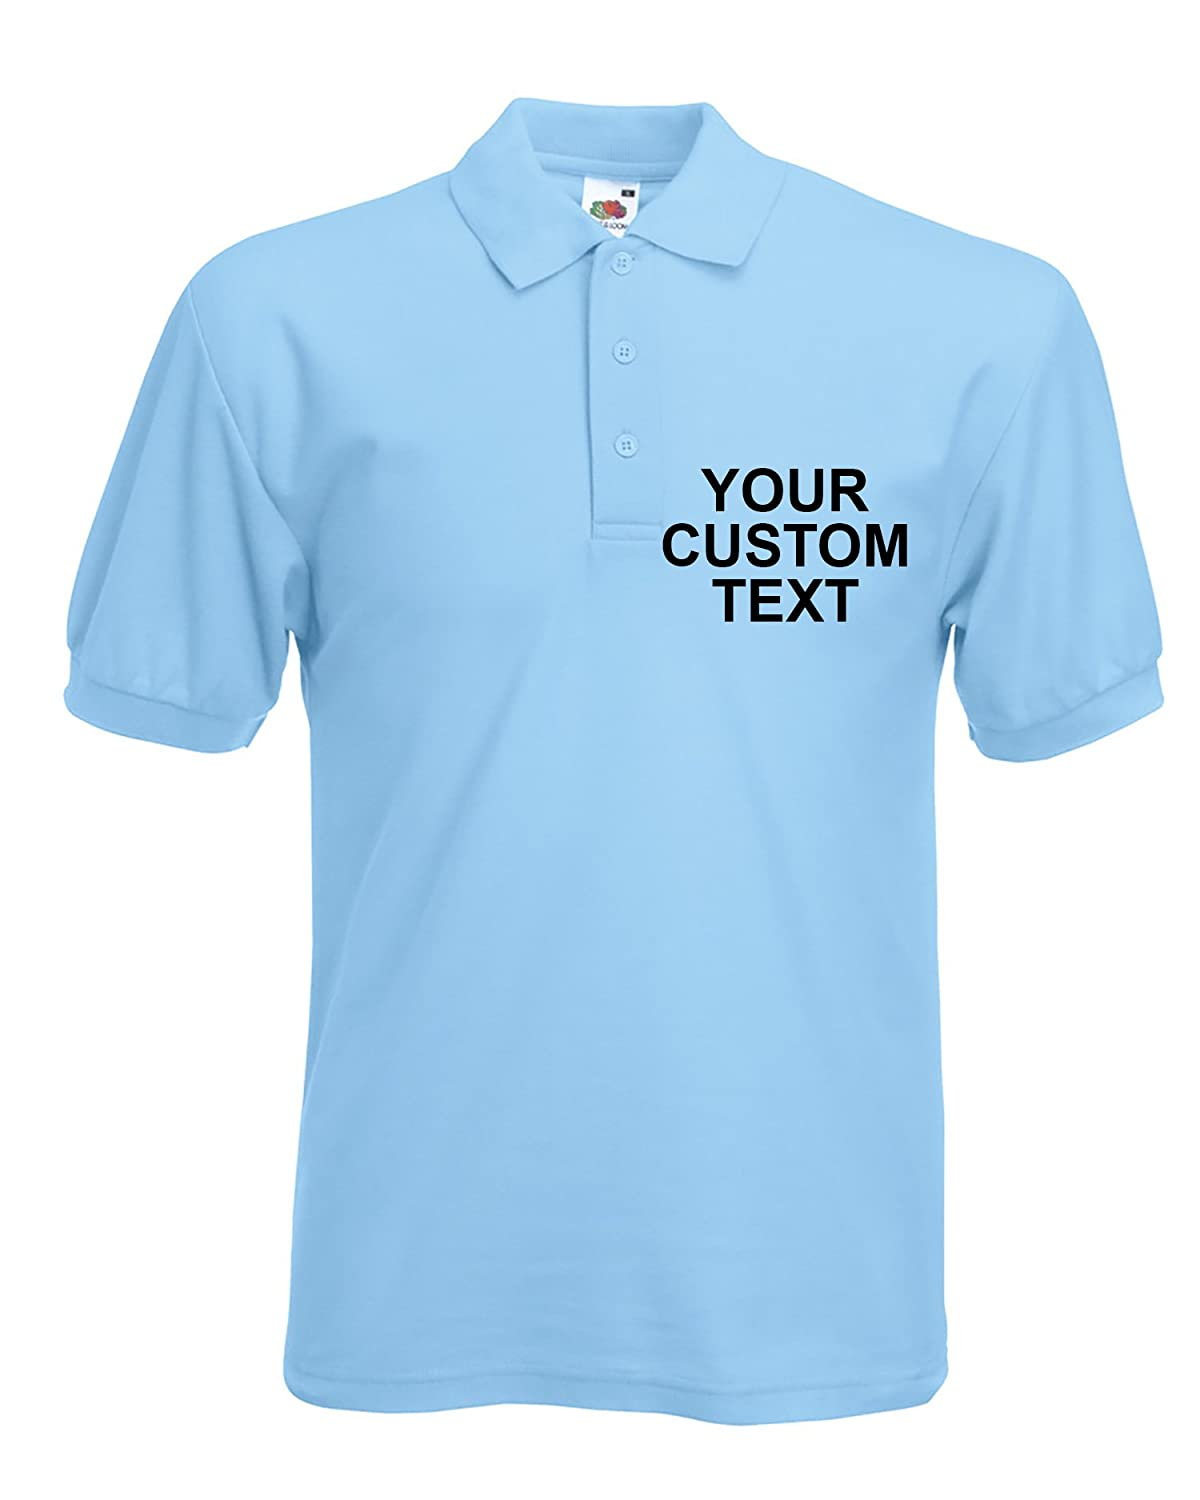 Custom Personalised Printed Polo Shirts Men's Company Polo Shirt Adults Sizes Workwear Next Day